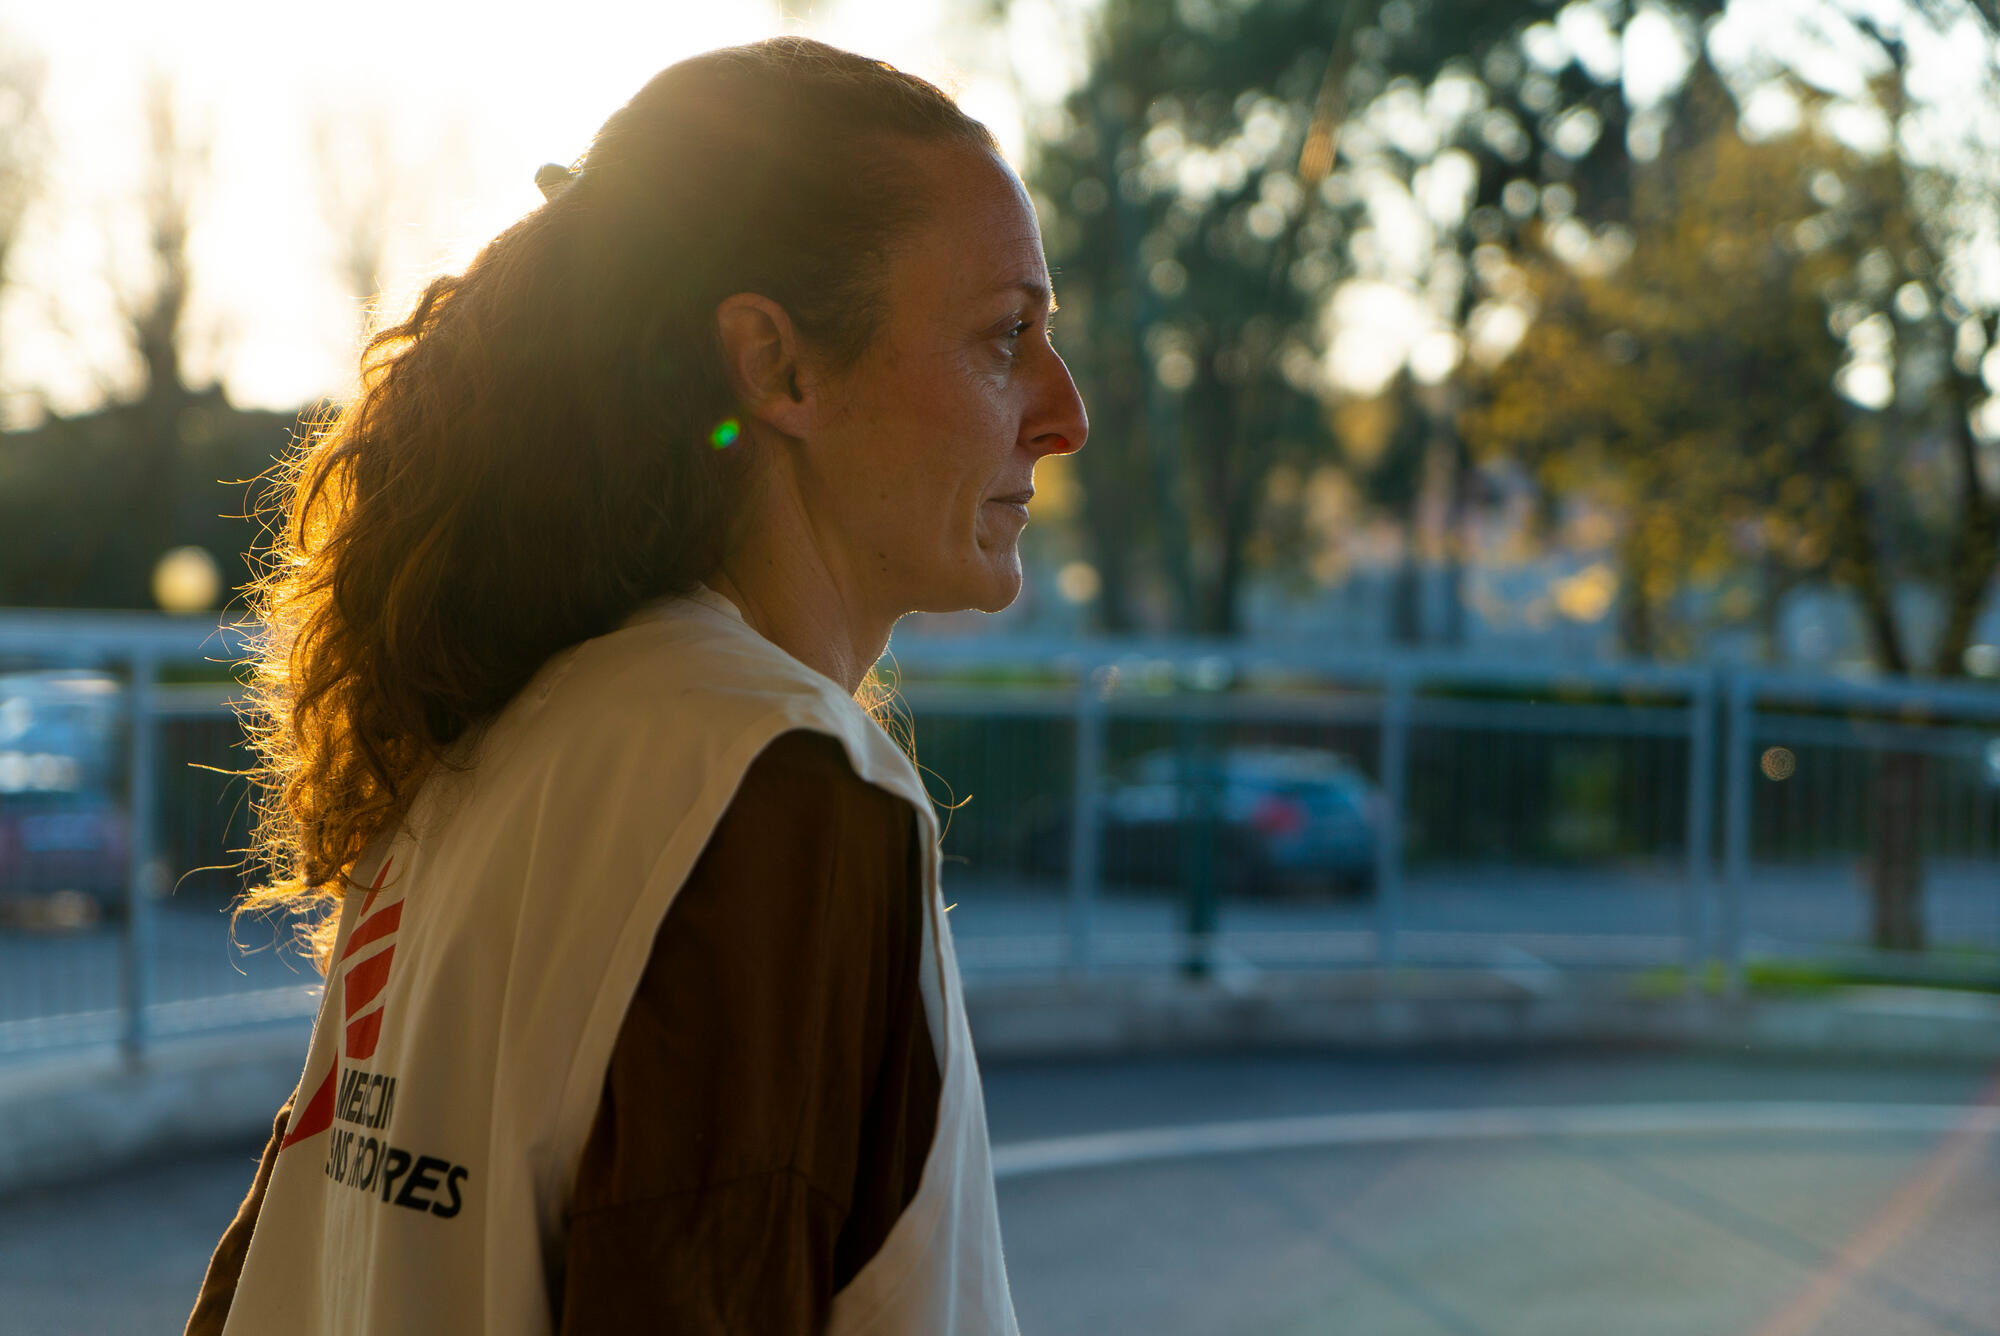 MSF has launched a COVID-19 intervention in Italy